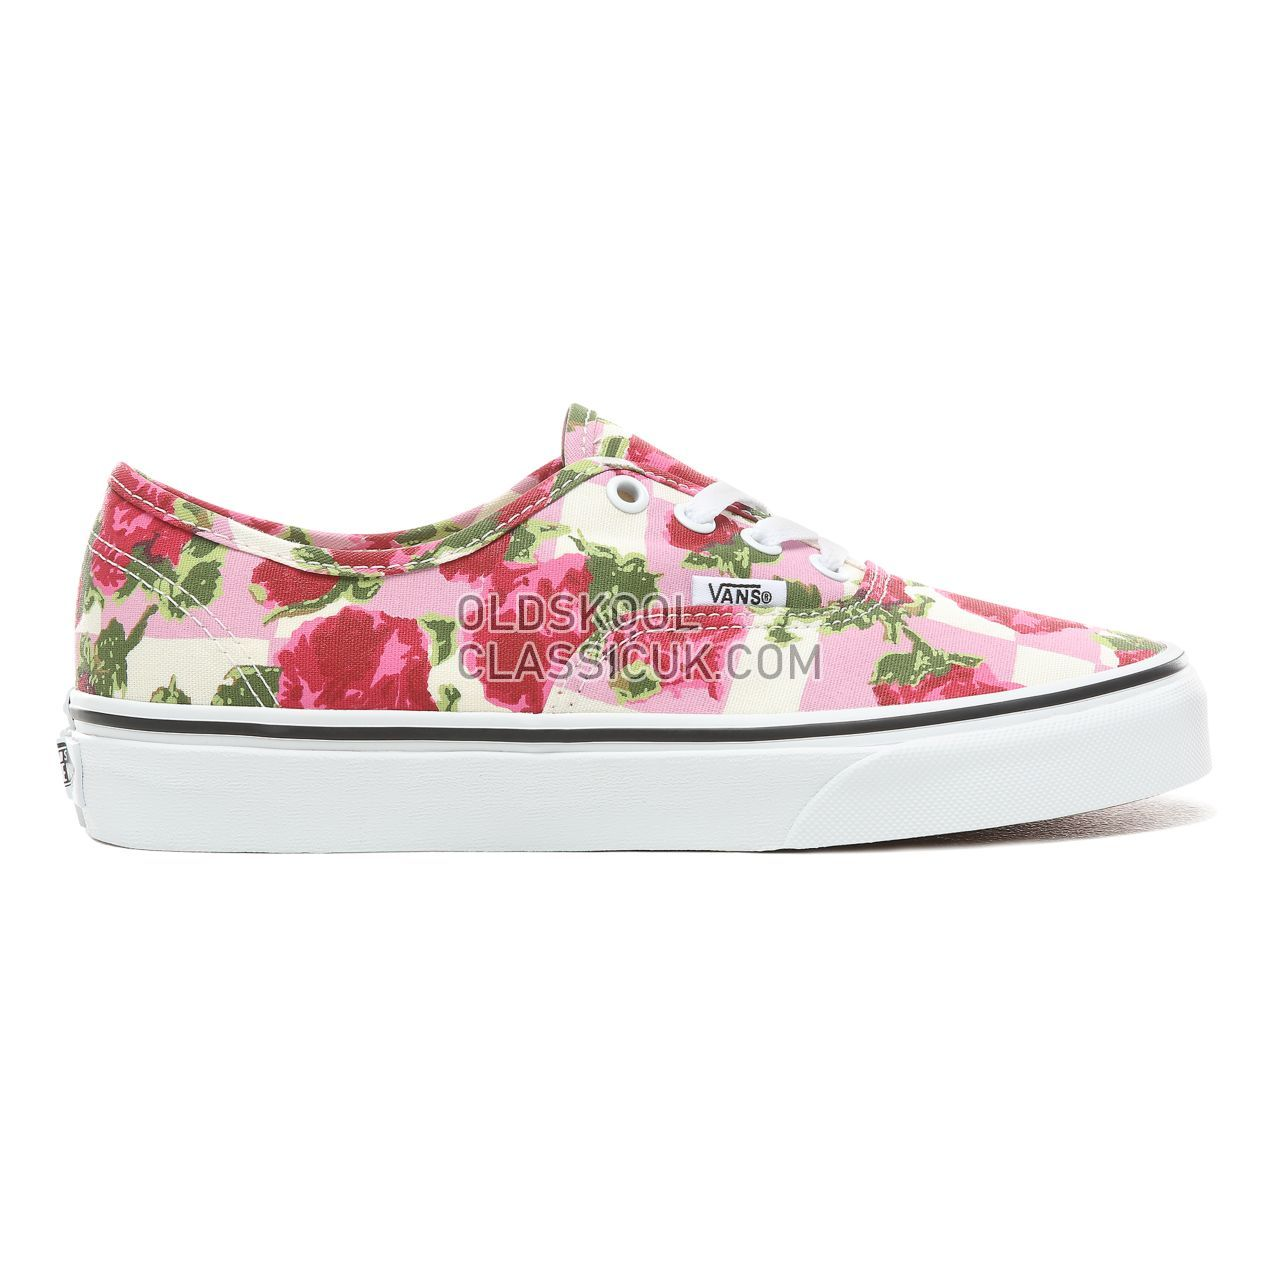 Vans Romantic Floral Authentic Sneakers Womens (Romantic Floral) Multi/True White VN0A38EMVKB Shoes